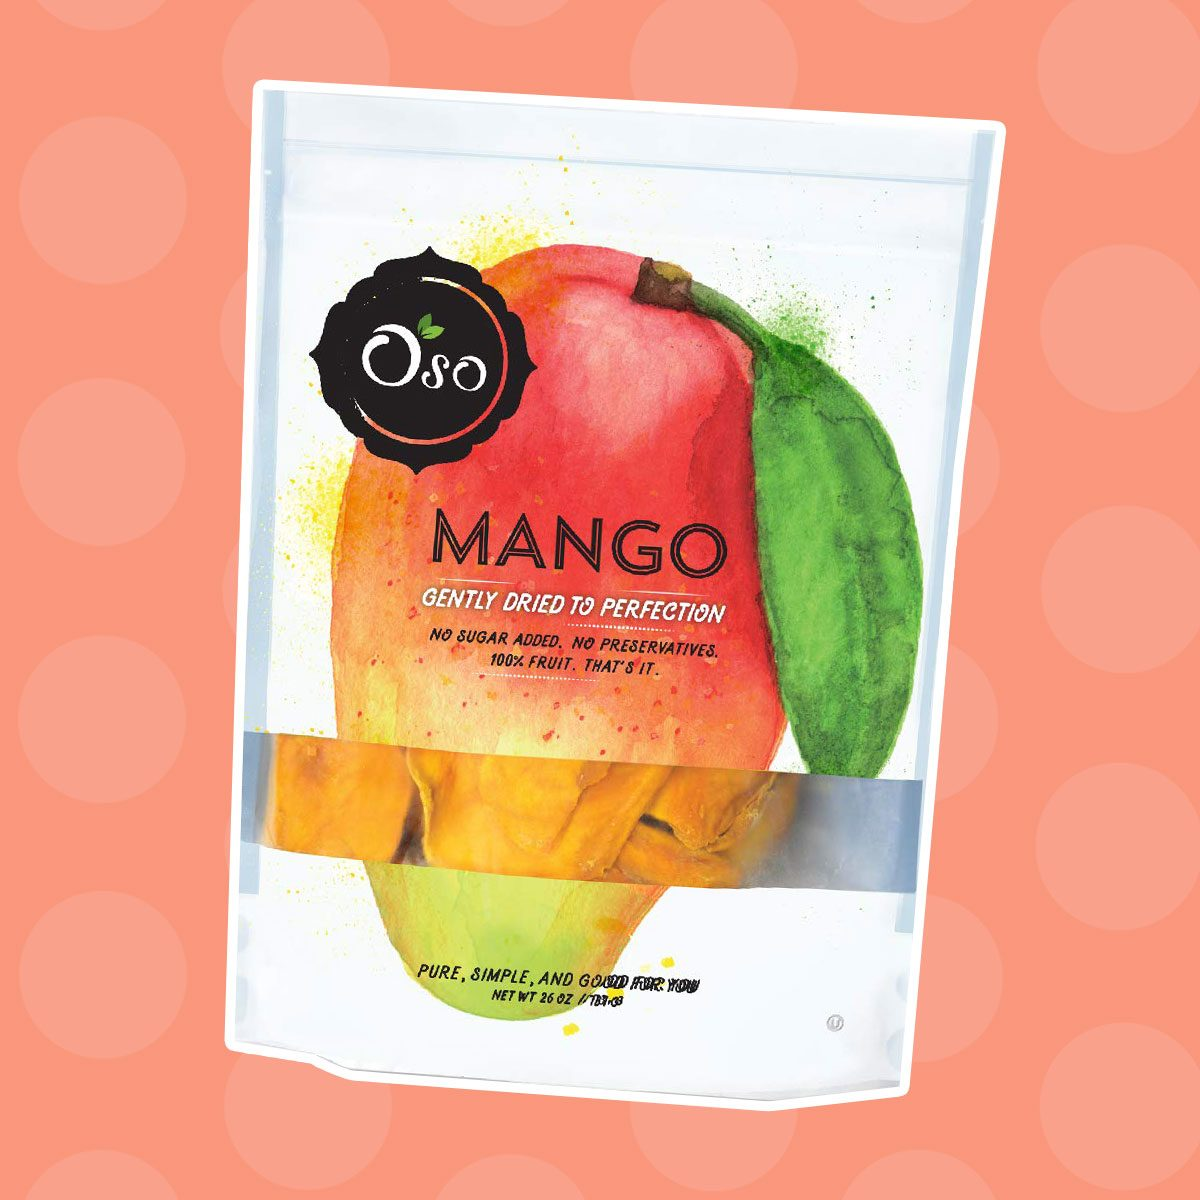 Oso Snacks Dried Mango Slices, Premium Quality, No Added Sugar or Preservatives, Big Pieces Only! 26oz